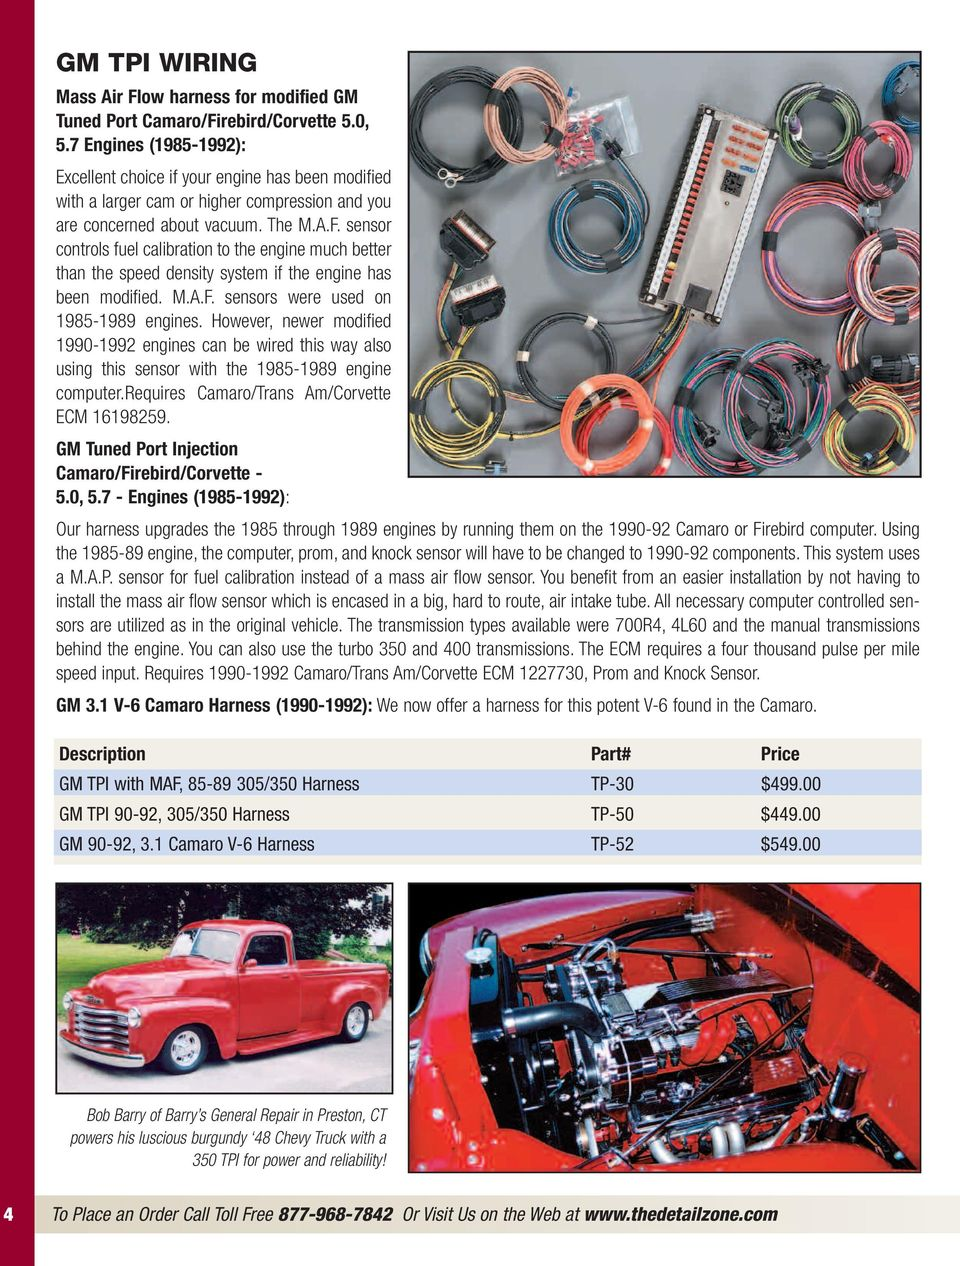 Fuel Injection Wiring Systems Pdf Diagram 85 Camaro Sport Coupe Sensor Controls Calibration To The Engine Much Better Than Speed Density System If